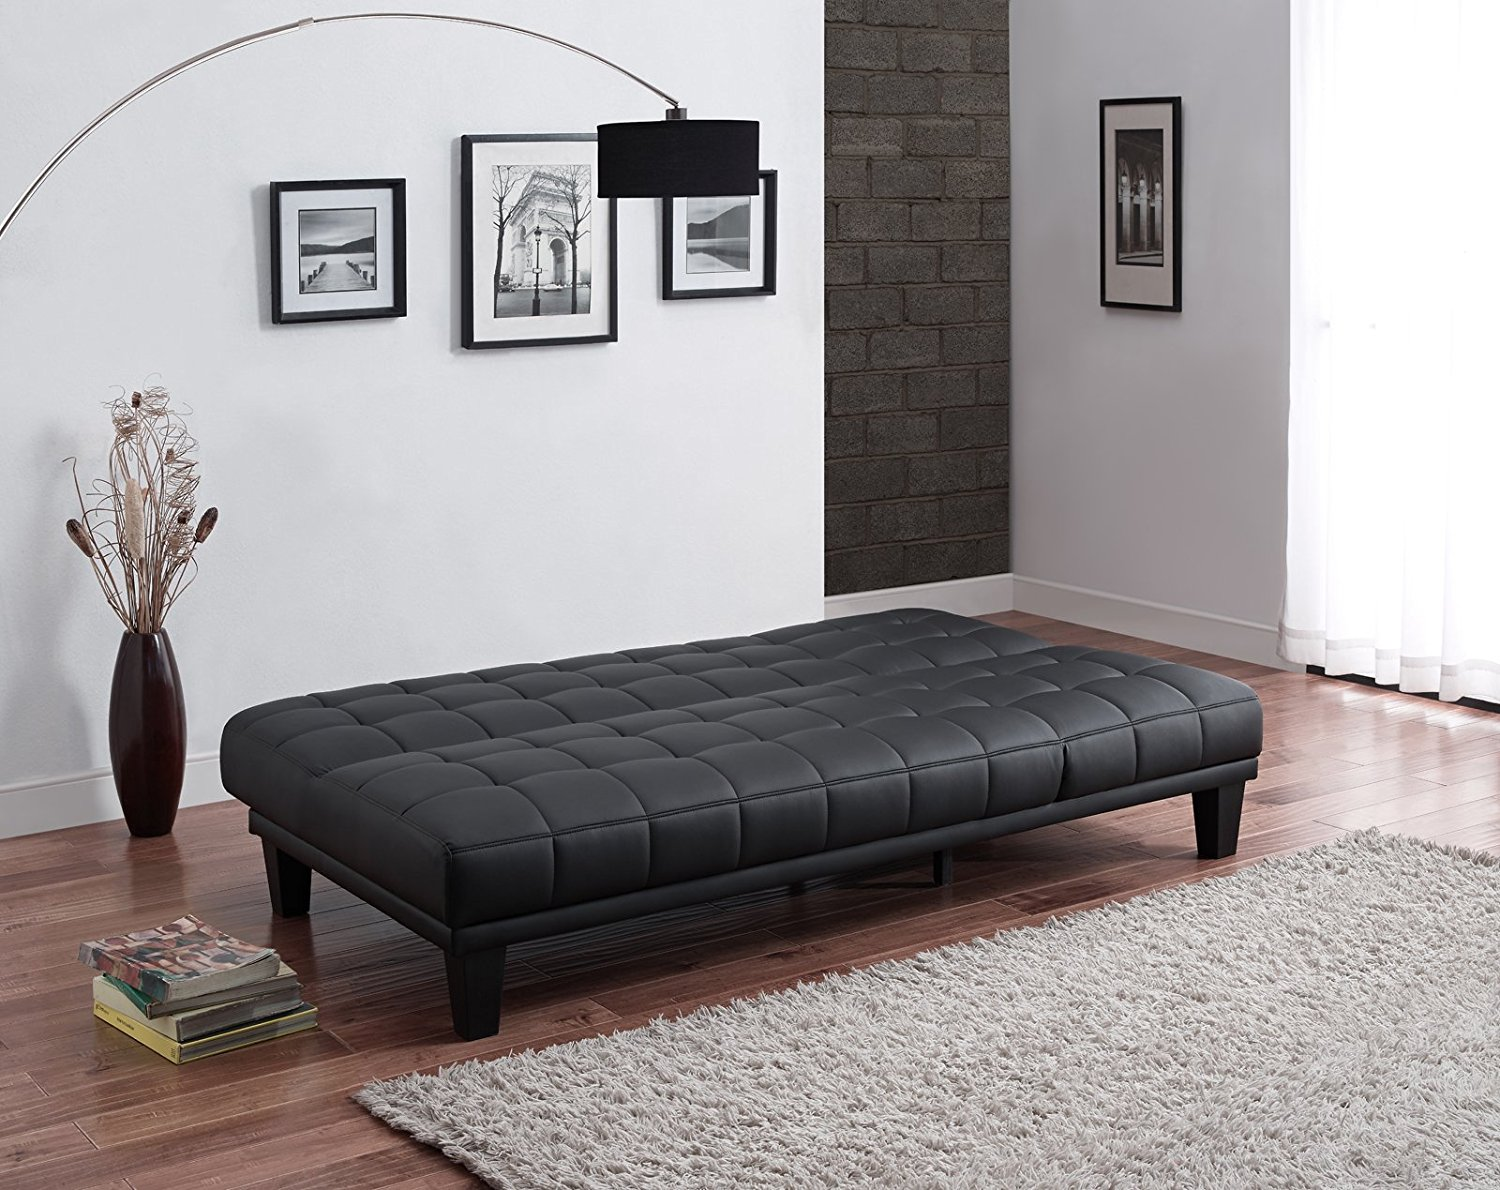 The Futon Beds With Mattress Included